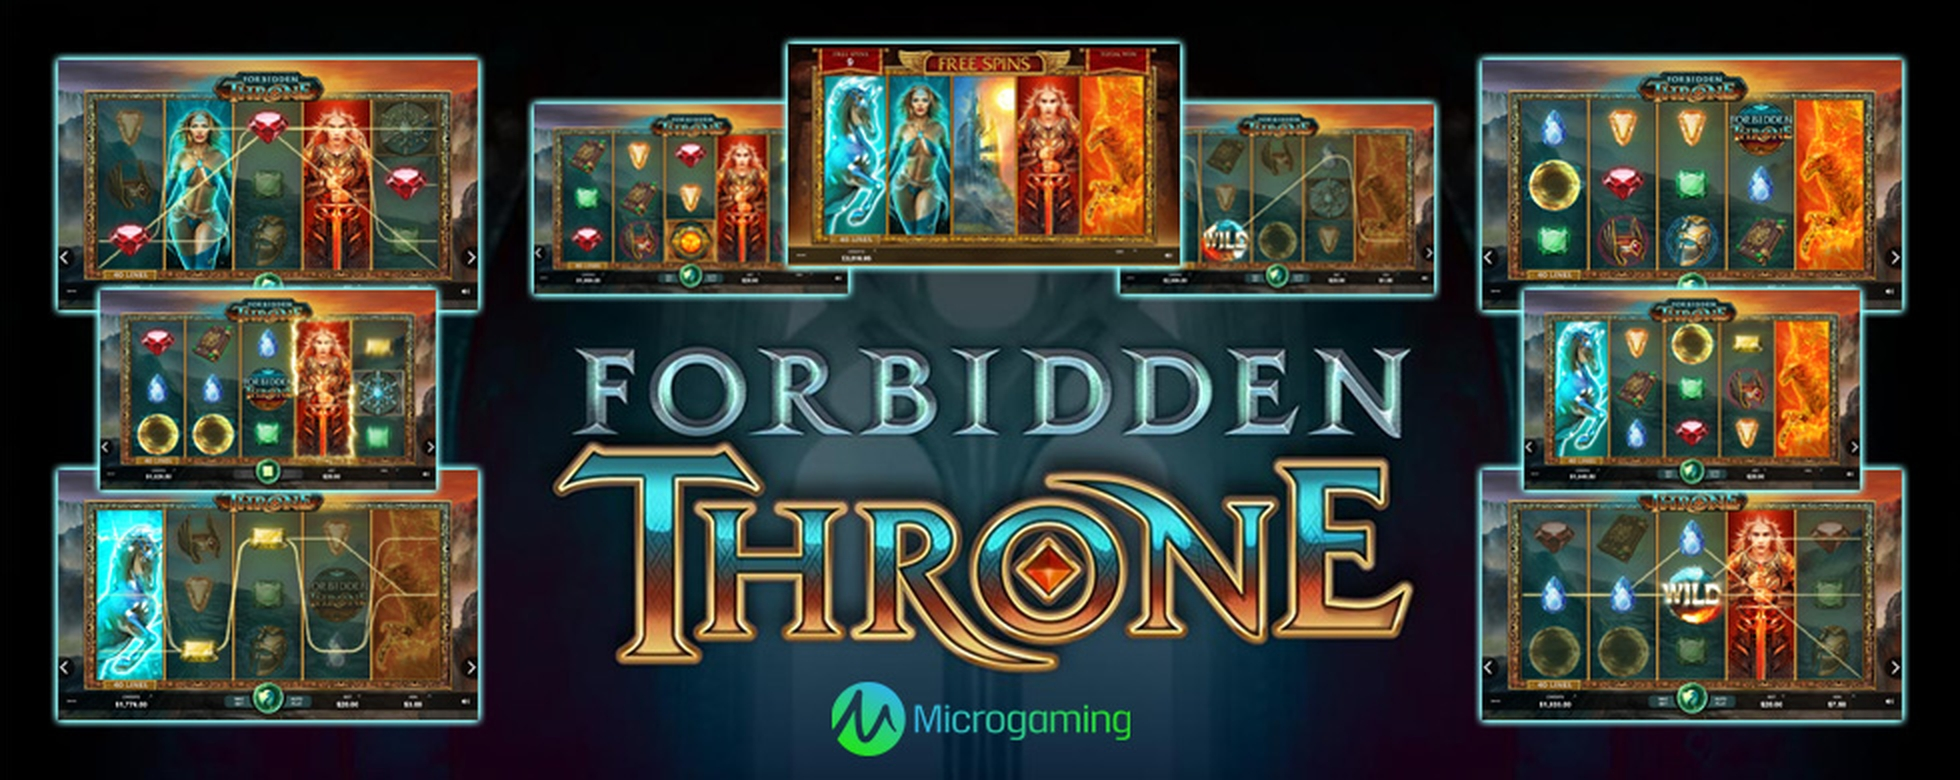 The Forbidden Throne Online Slot Demo Game by MahiGaming